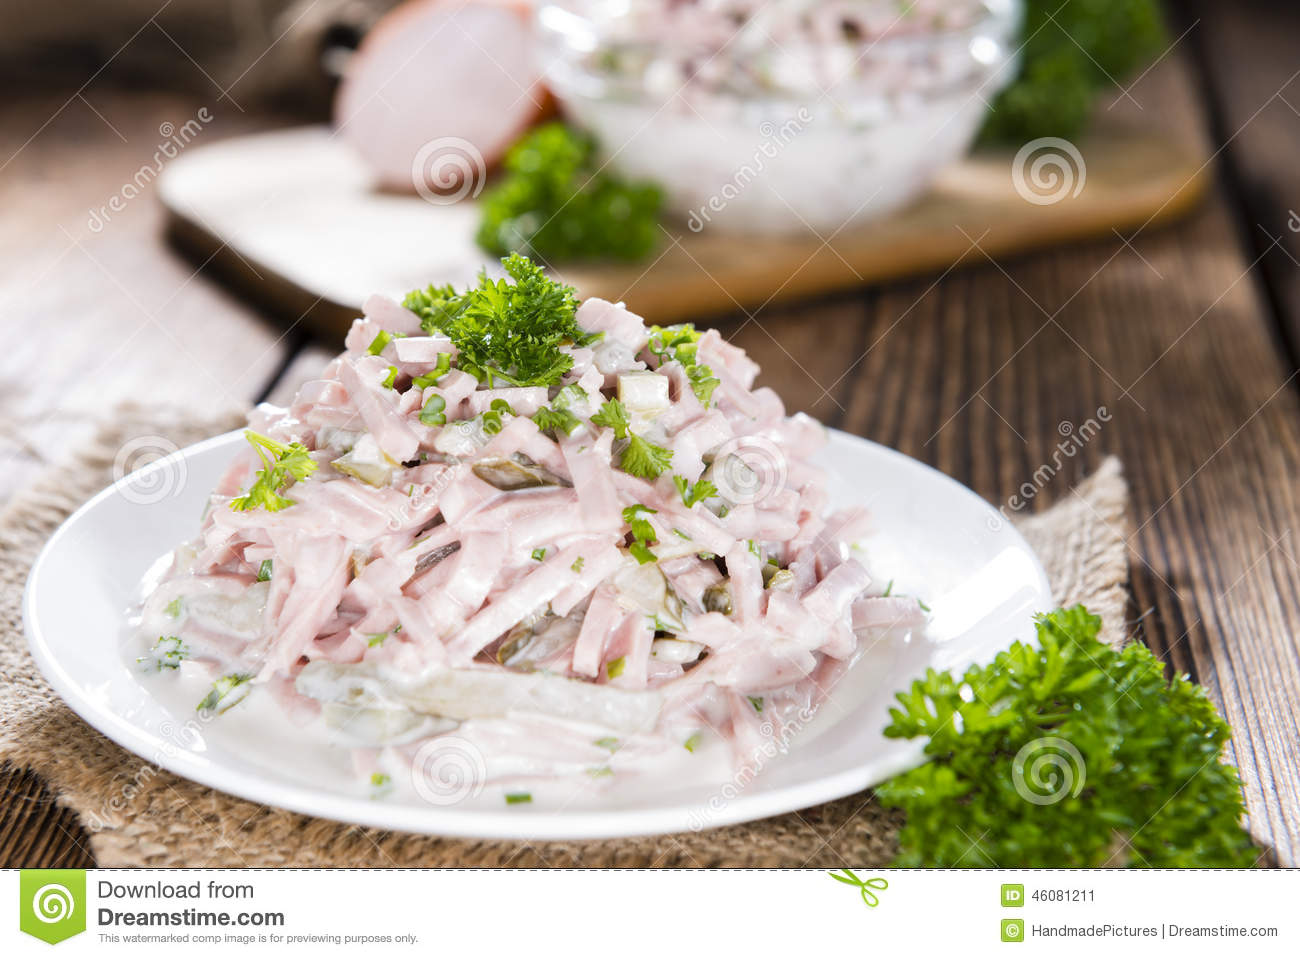 salade de viande avec la mayonnaise image stock image du d licieux cuisine 46081211. Black Bedroom Furniture Sets. Home Design Ideas